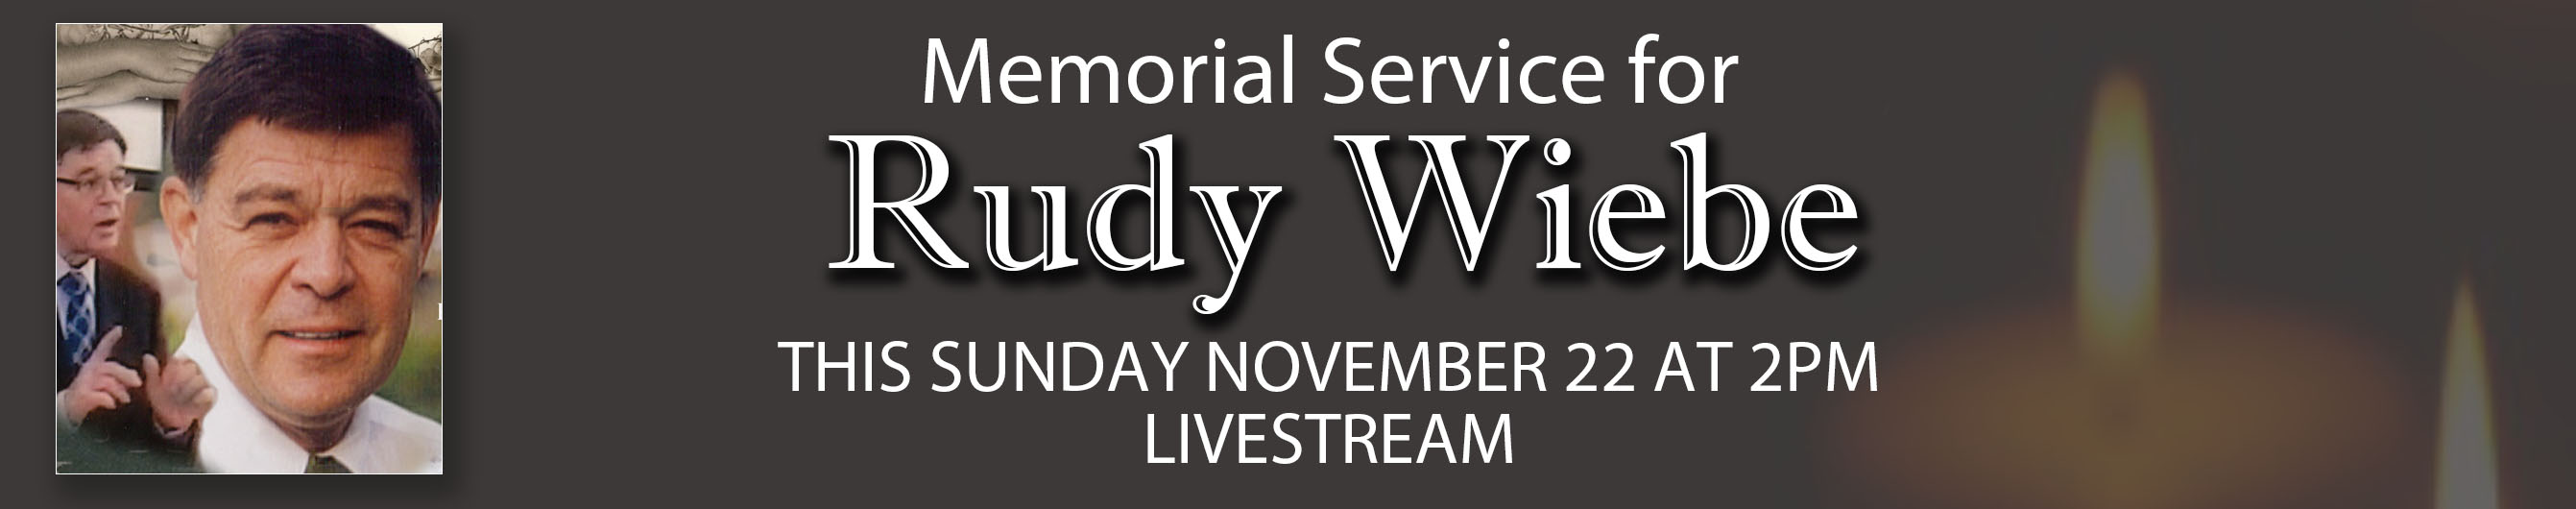 Funeral service for Rudy Wiebe